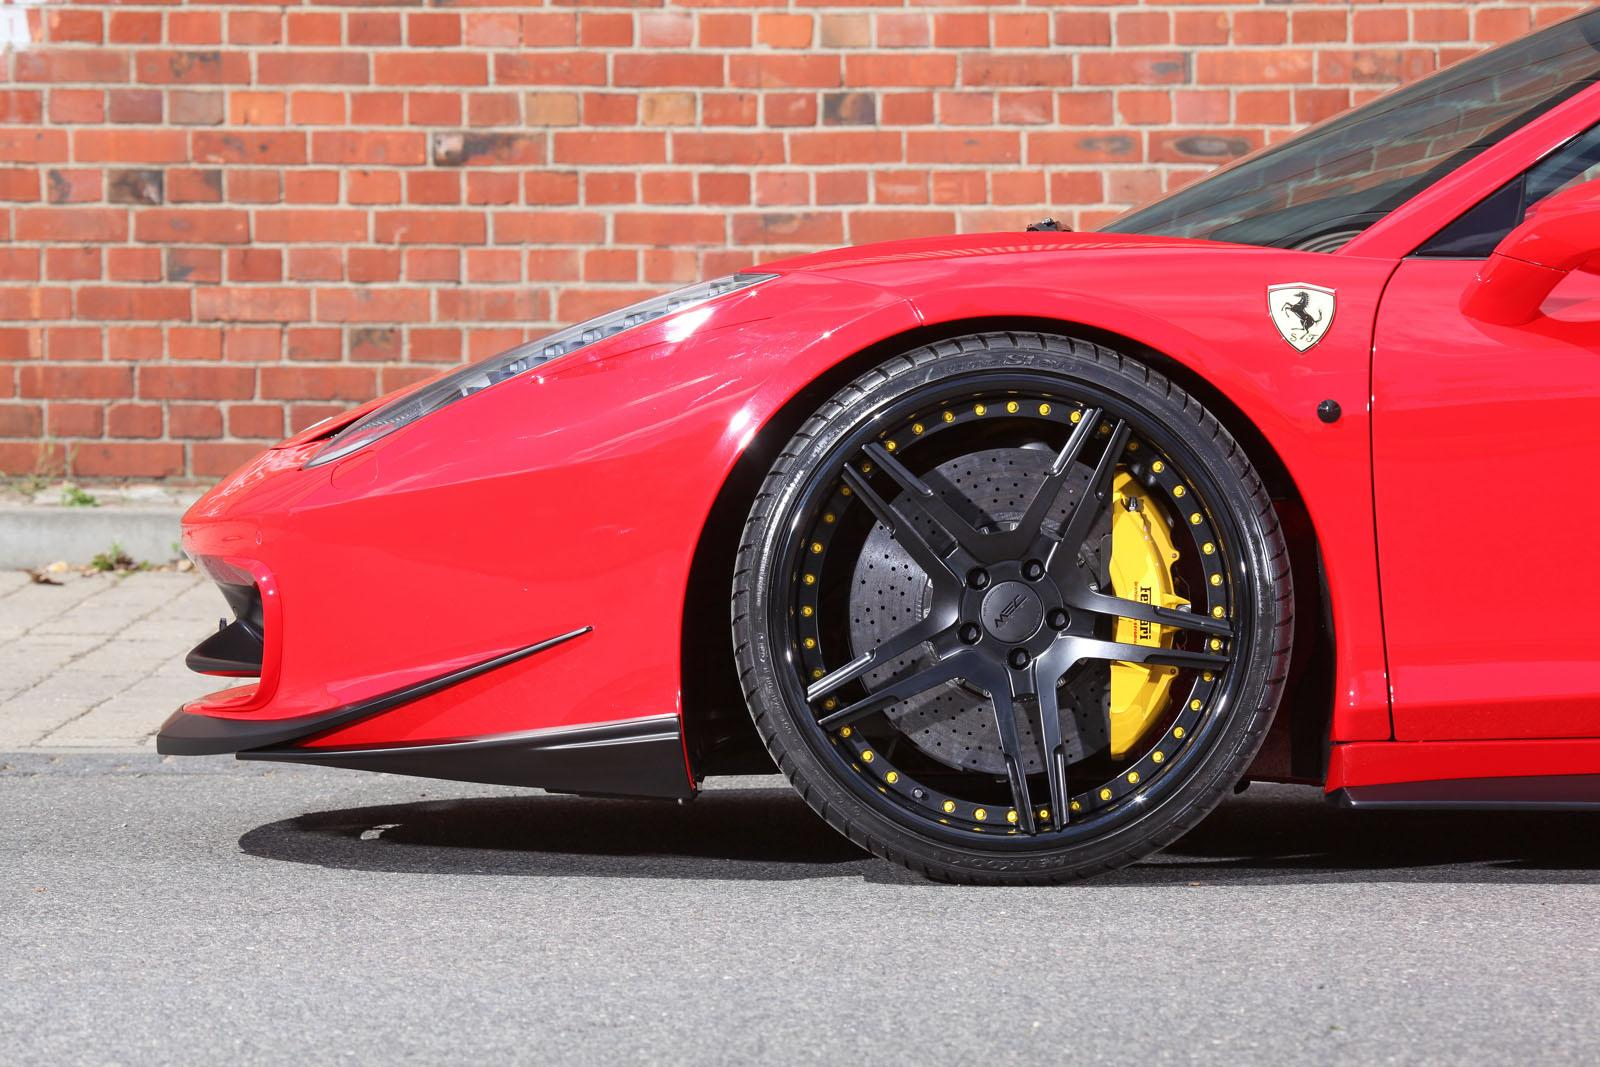 Mec Design Announces Ferrari 458 Spider Upgrades